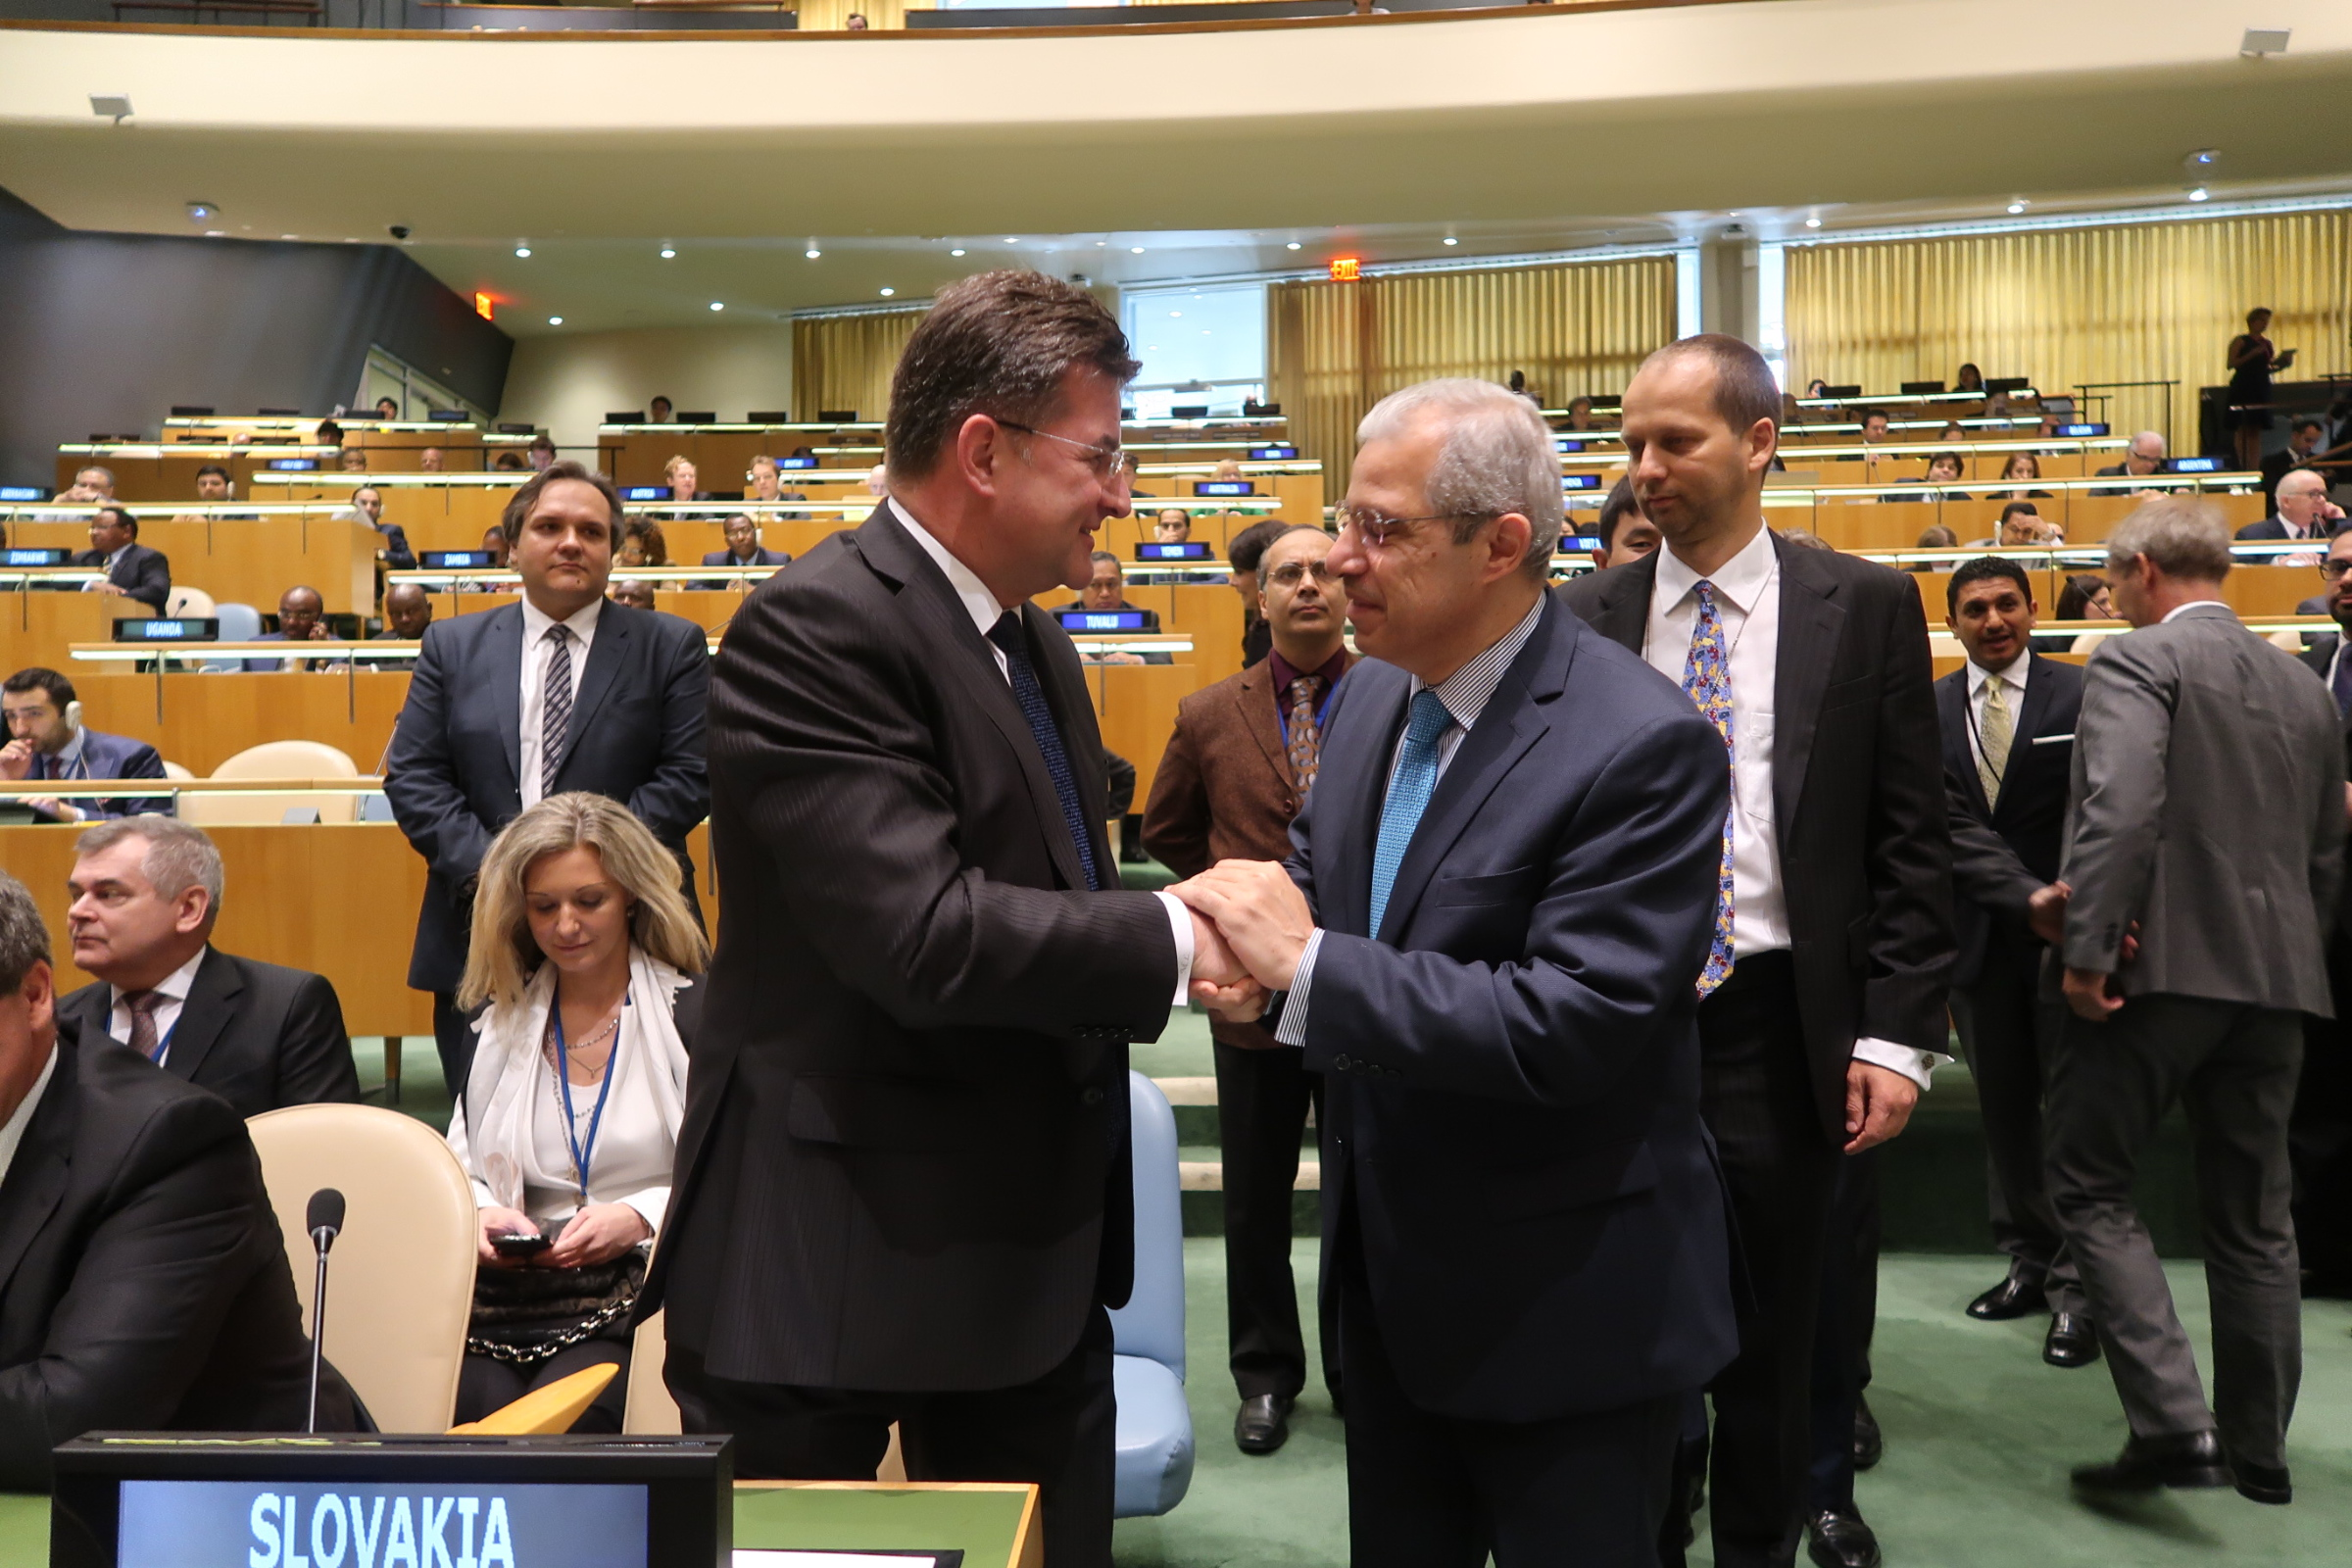 Election of the President of the General Assembly